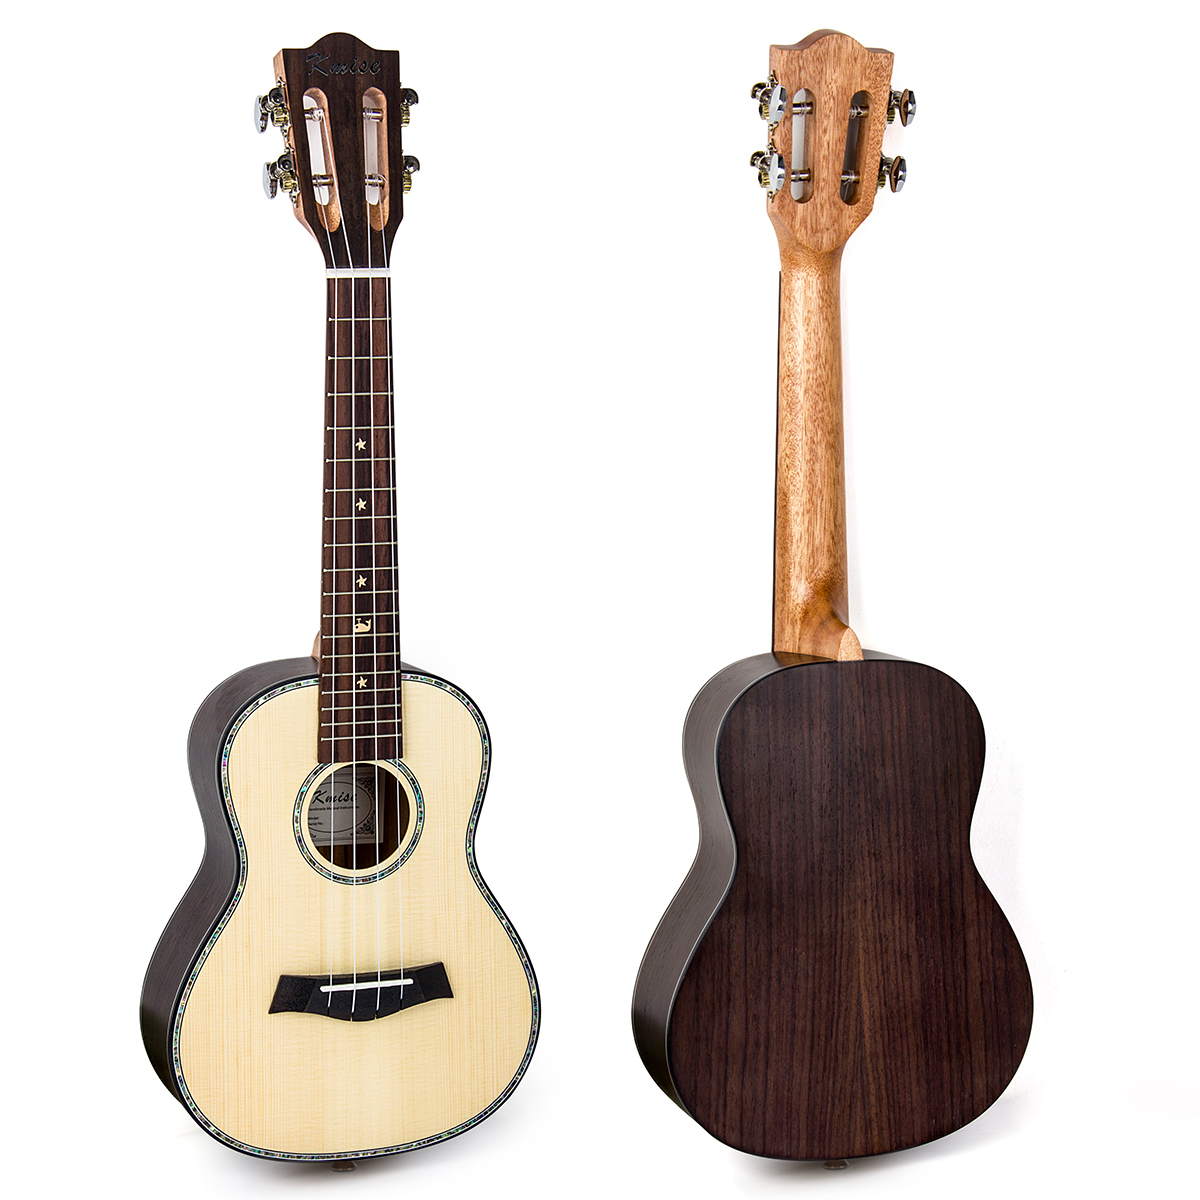 Kmise Concert Ukulele Solid Spruce 23 inch Classical Guitar Head 18 Frets Aquila String G-C-E-A